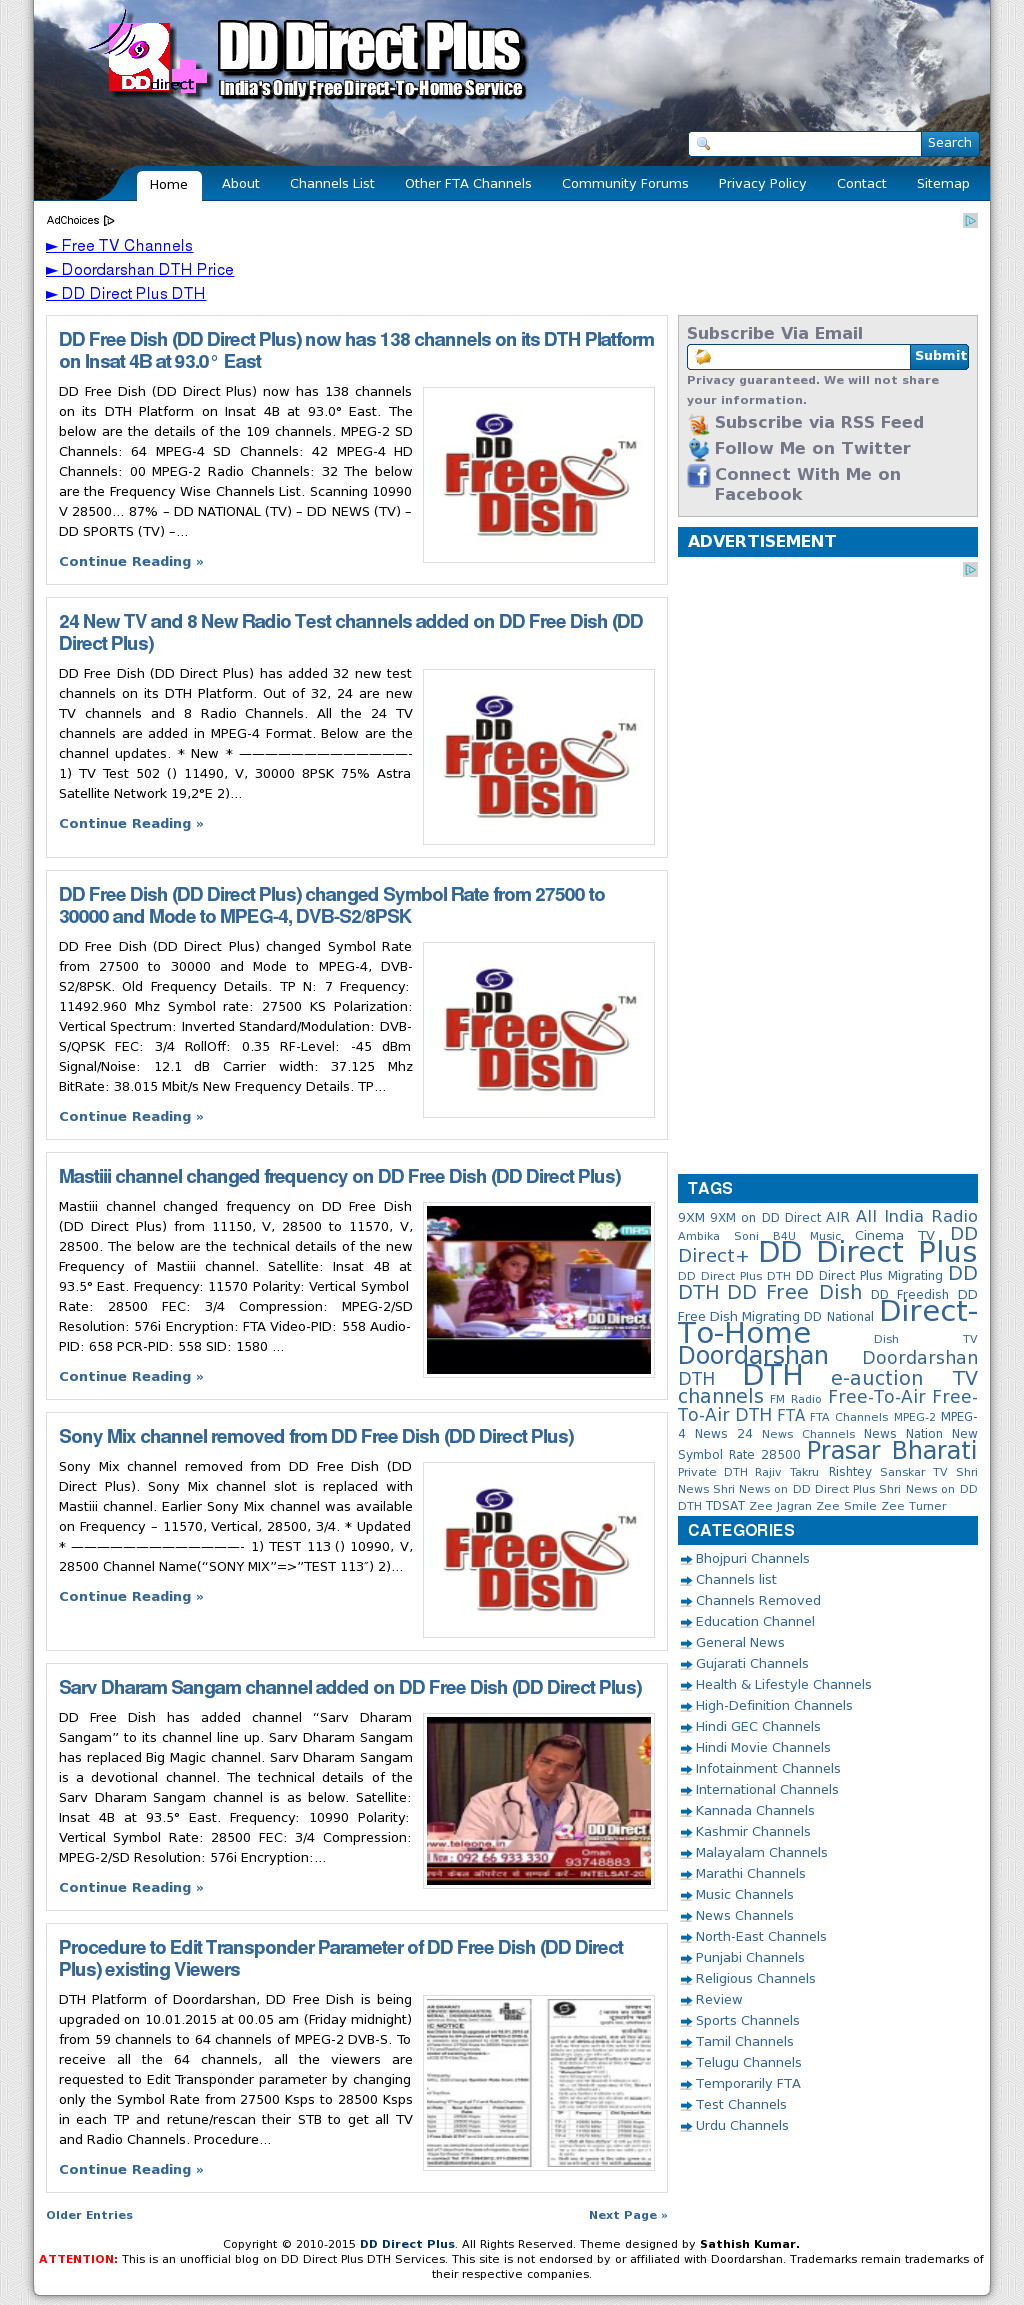 Dddirectplus Competitors, Revenue and Employees - Owler